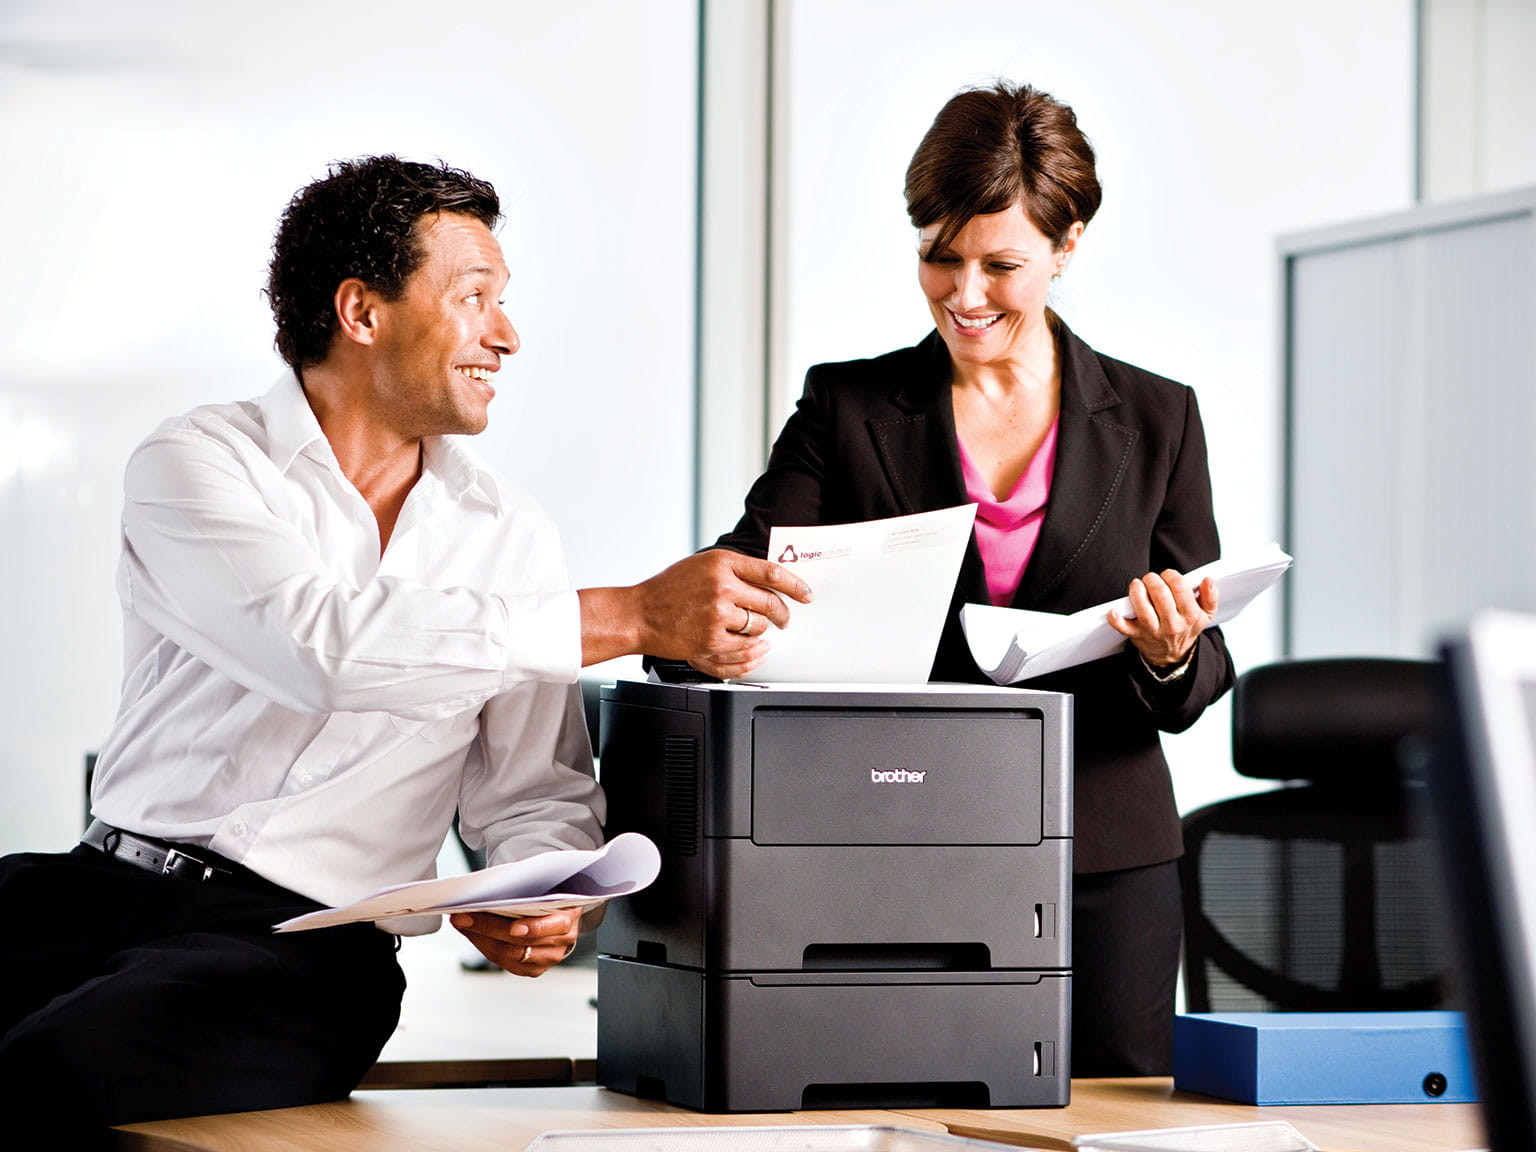 Coworkers smiling over a Brother printer